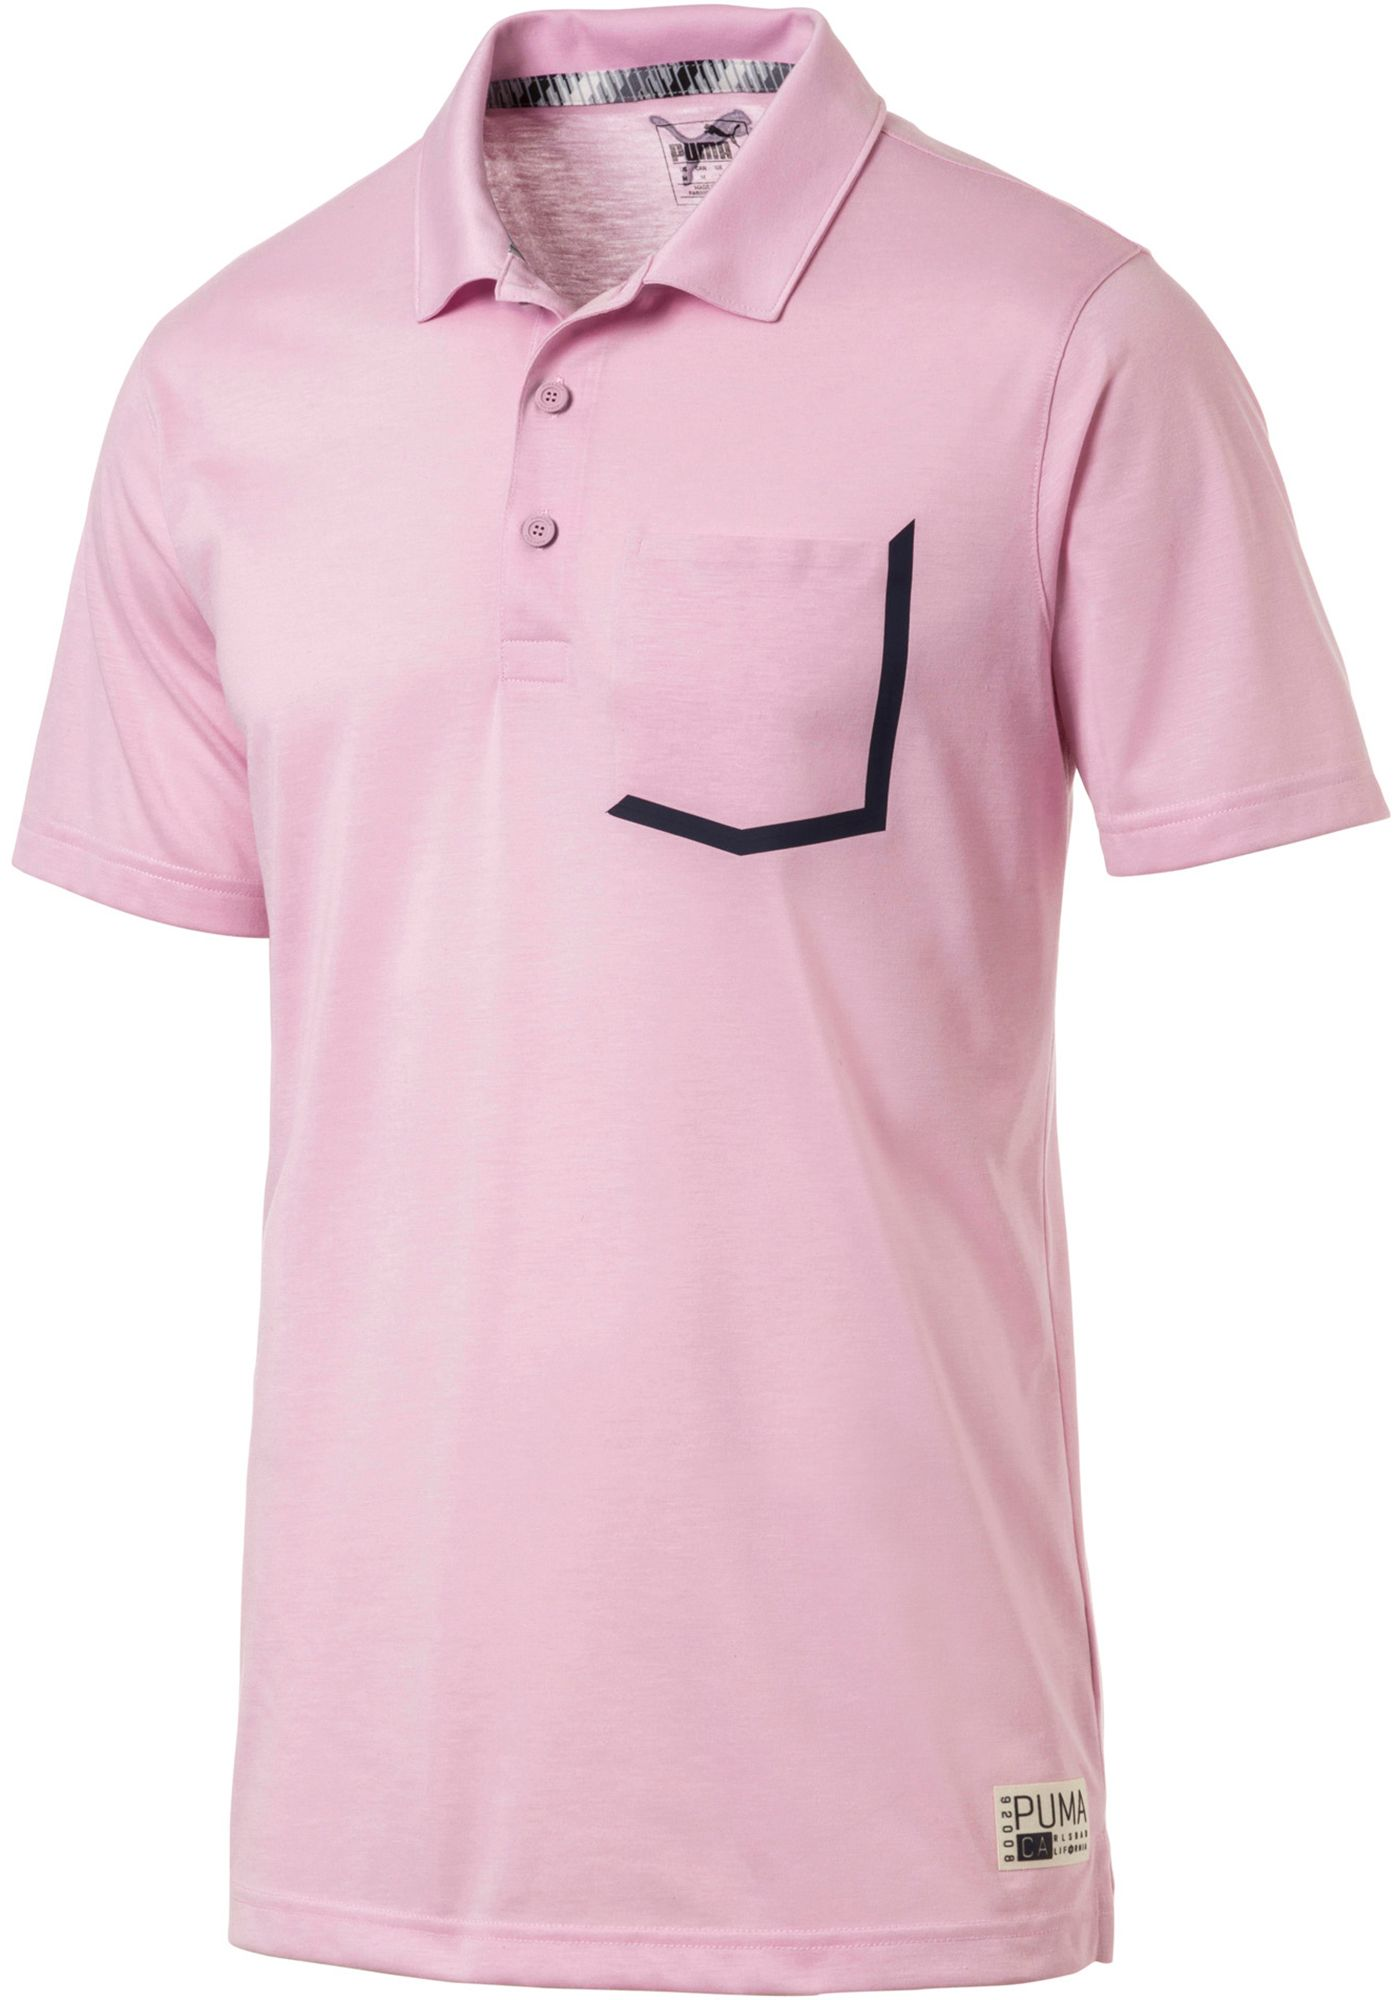 PUMA Men's Faraday Golf Polo